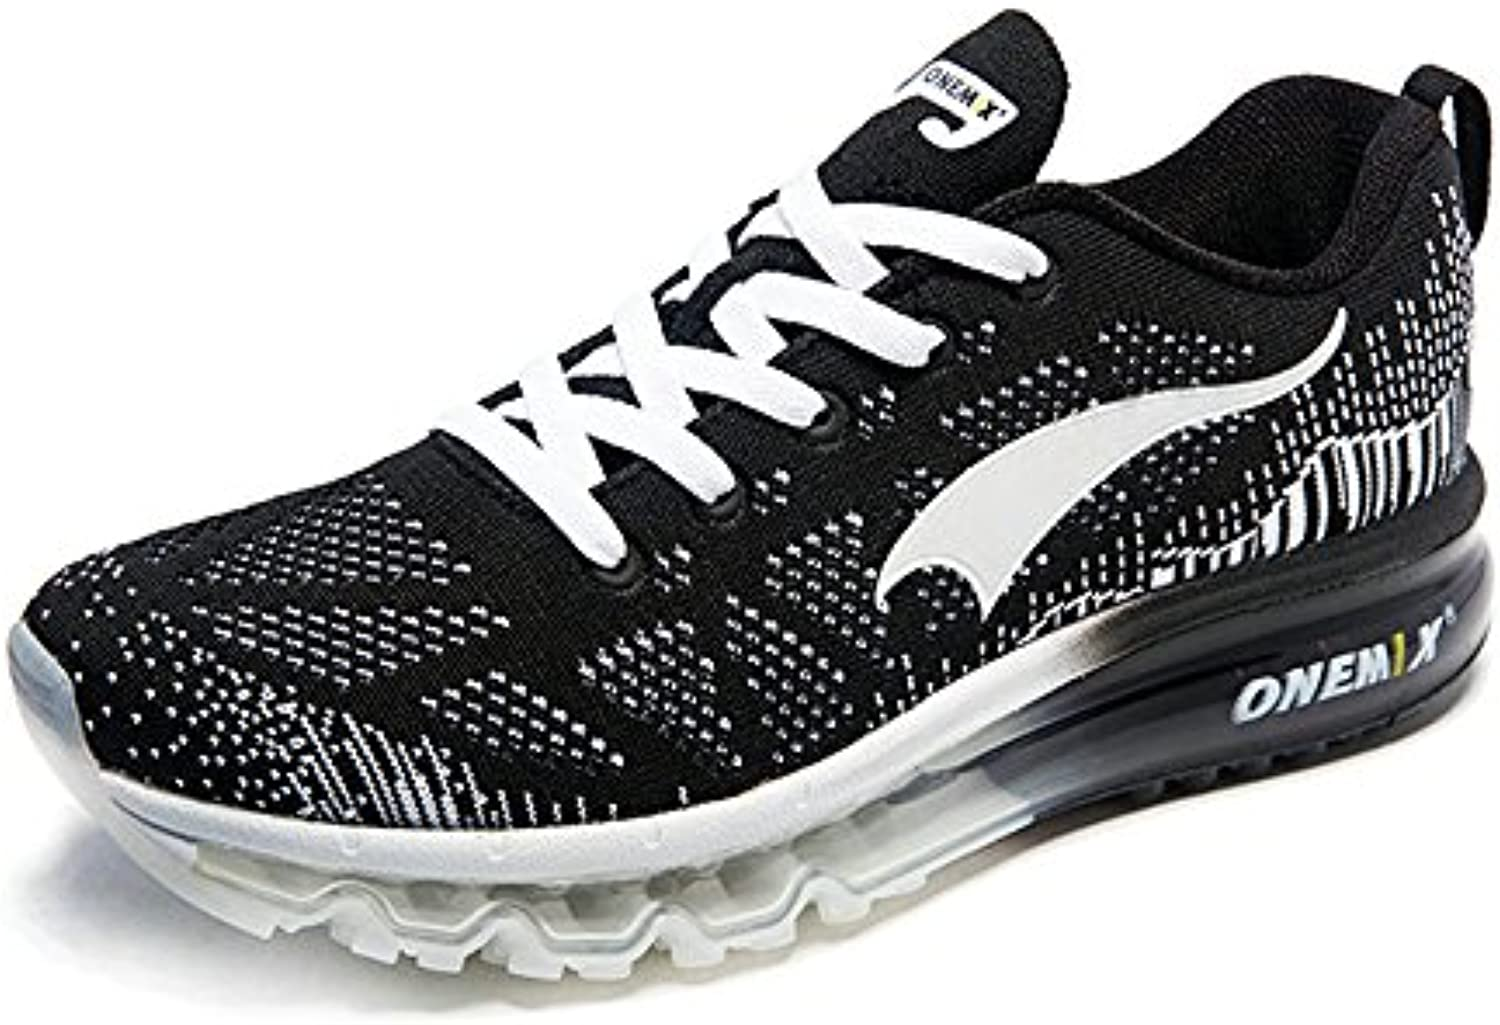 Onemix Hombre Mujer Air Deportes Zapatillas de Running Music Rhythm 1st Generation Respirable Atlético Unisex...